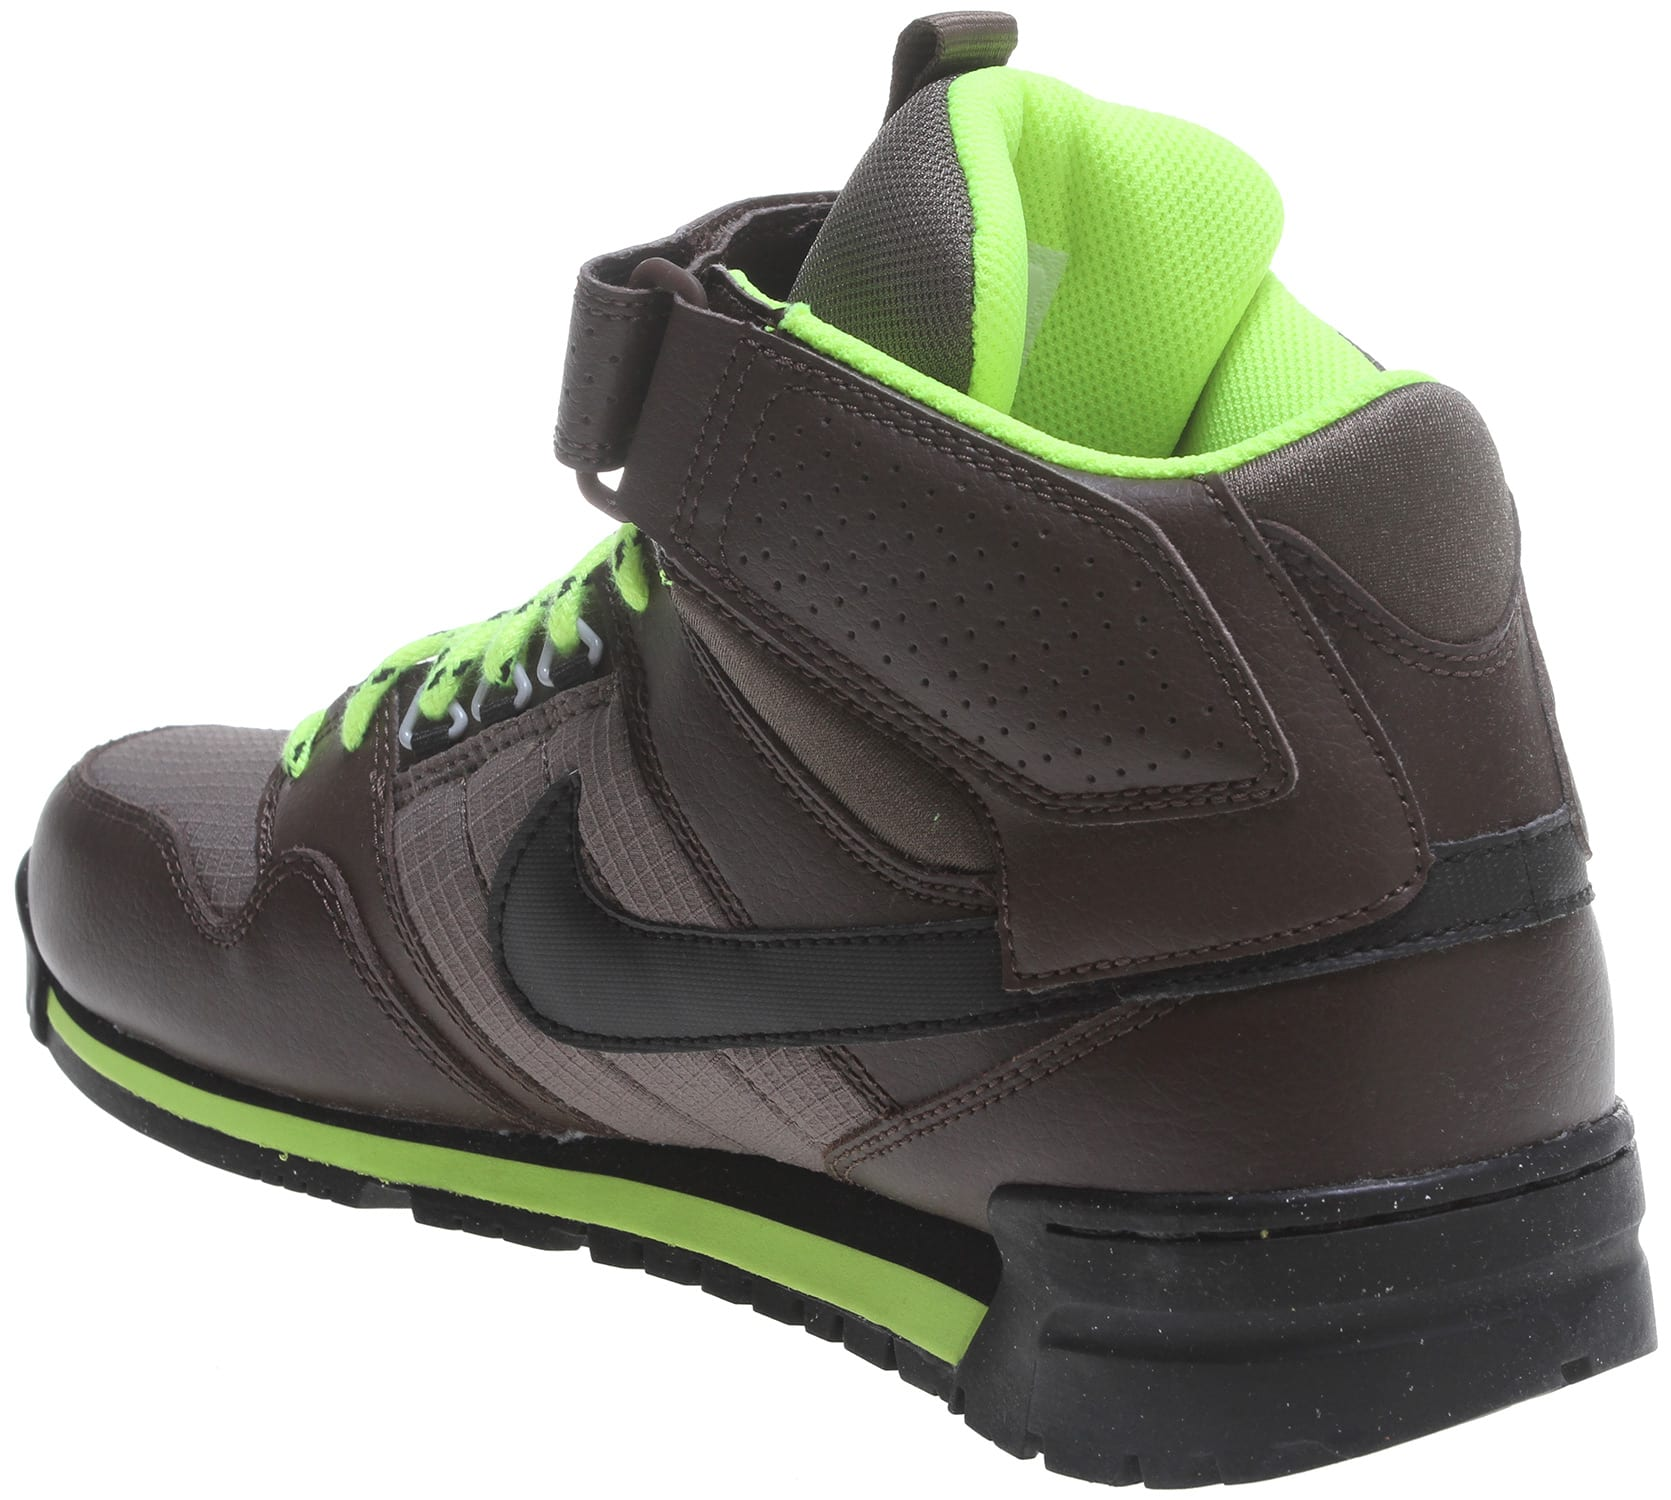 Nike Mogan Mid 2 Oms Hiking Boots